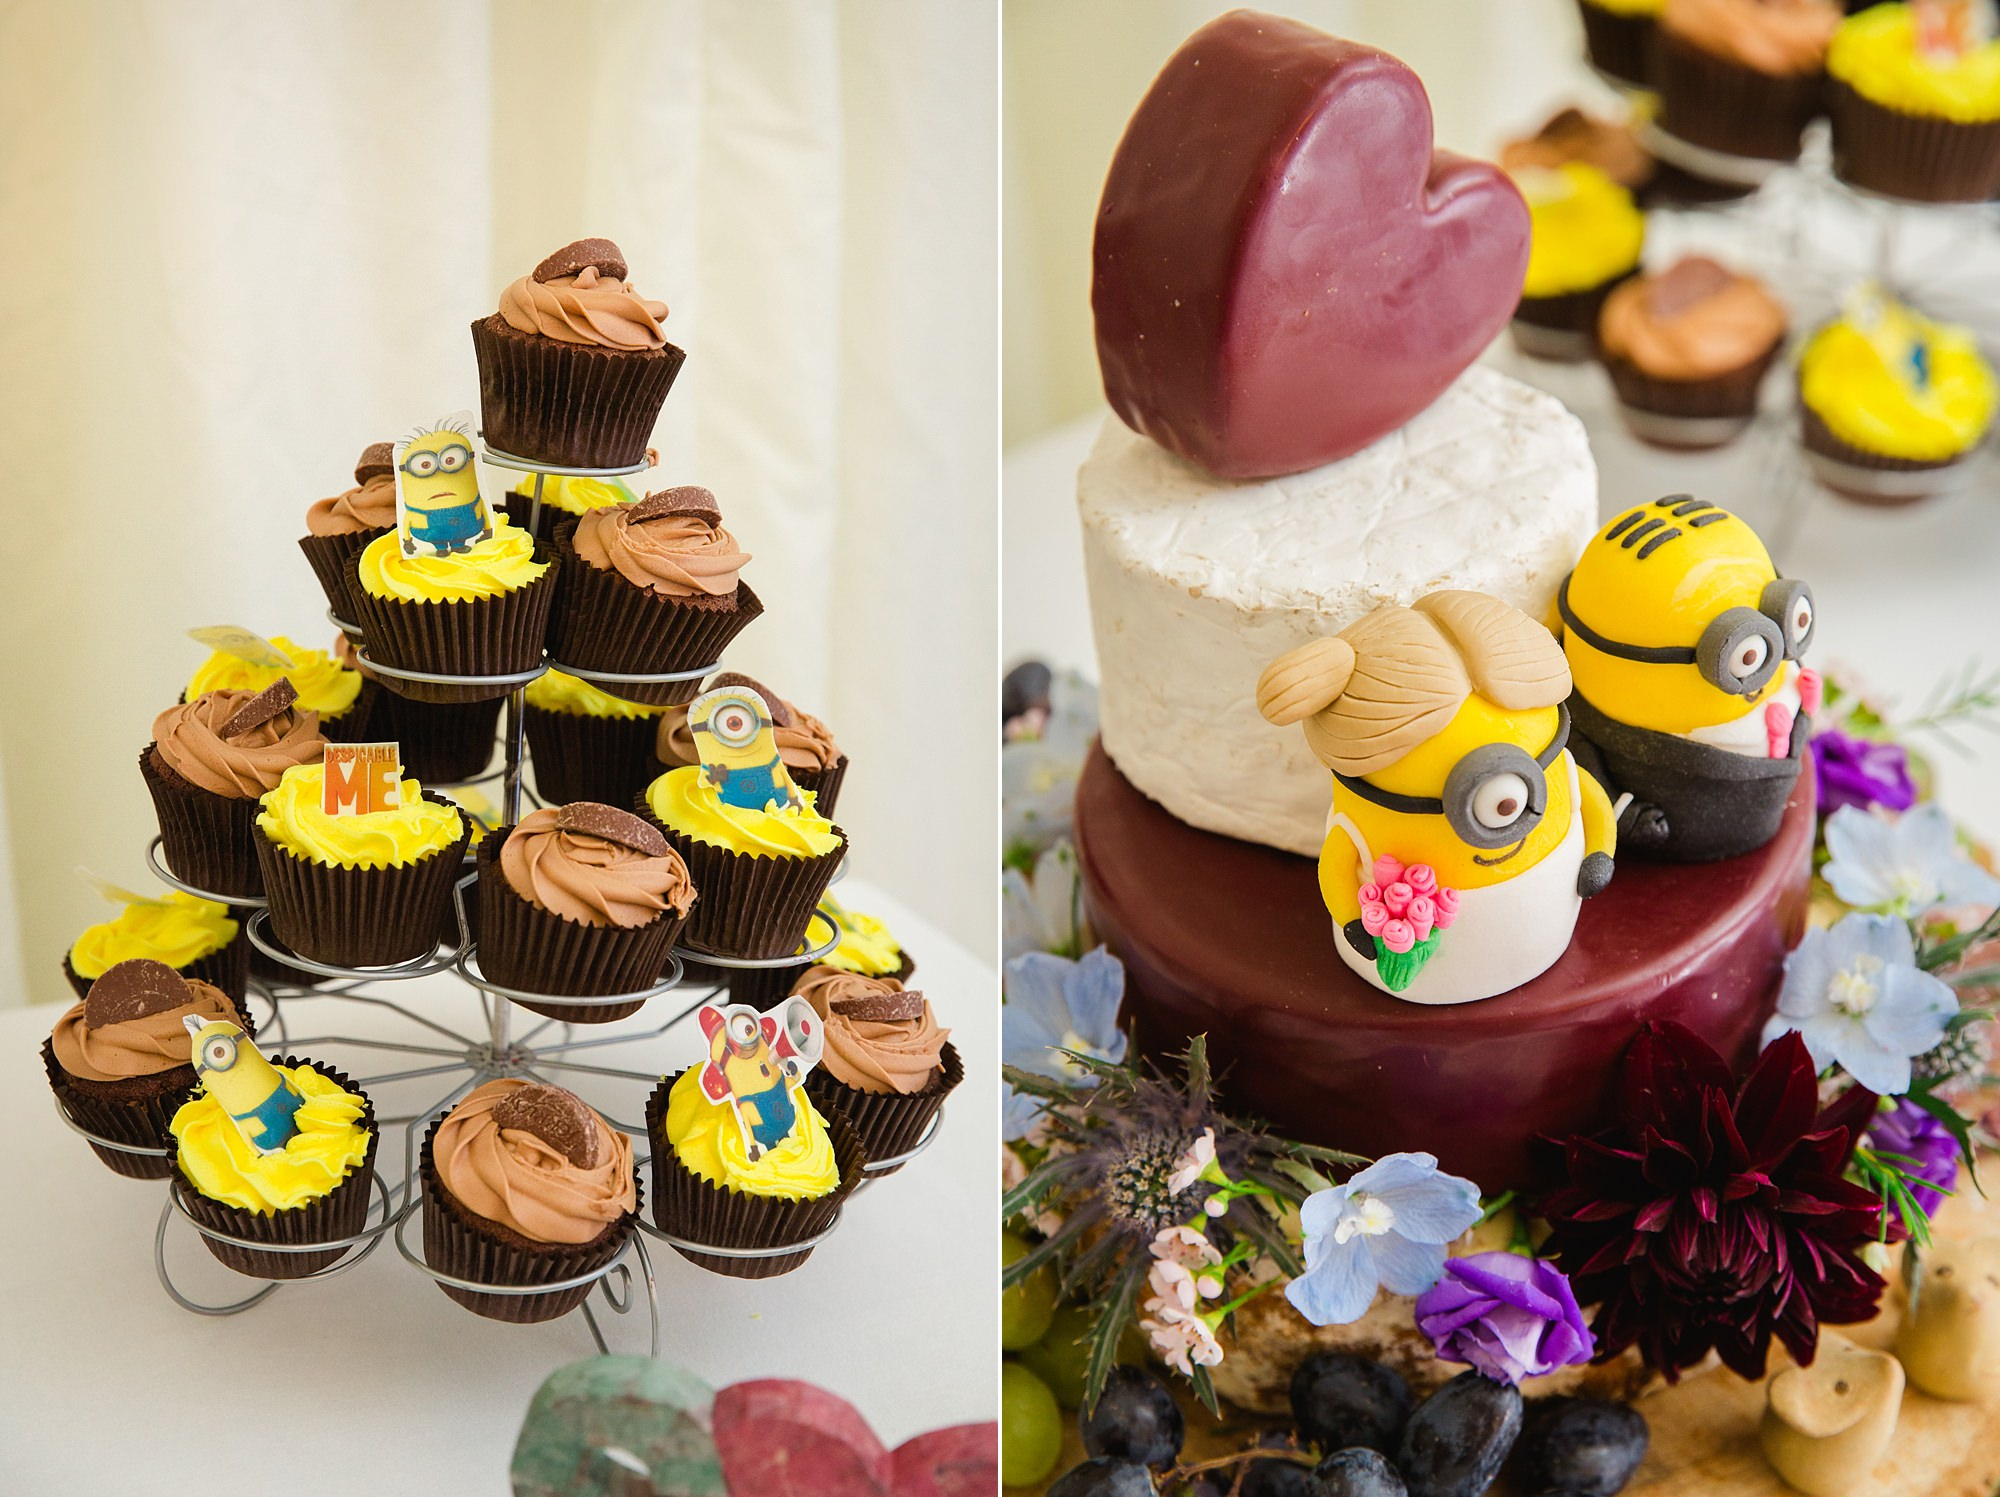 A fun wedding cake with minions and cheese